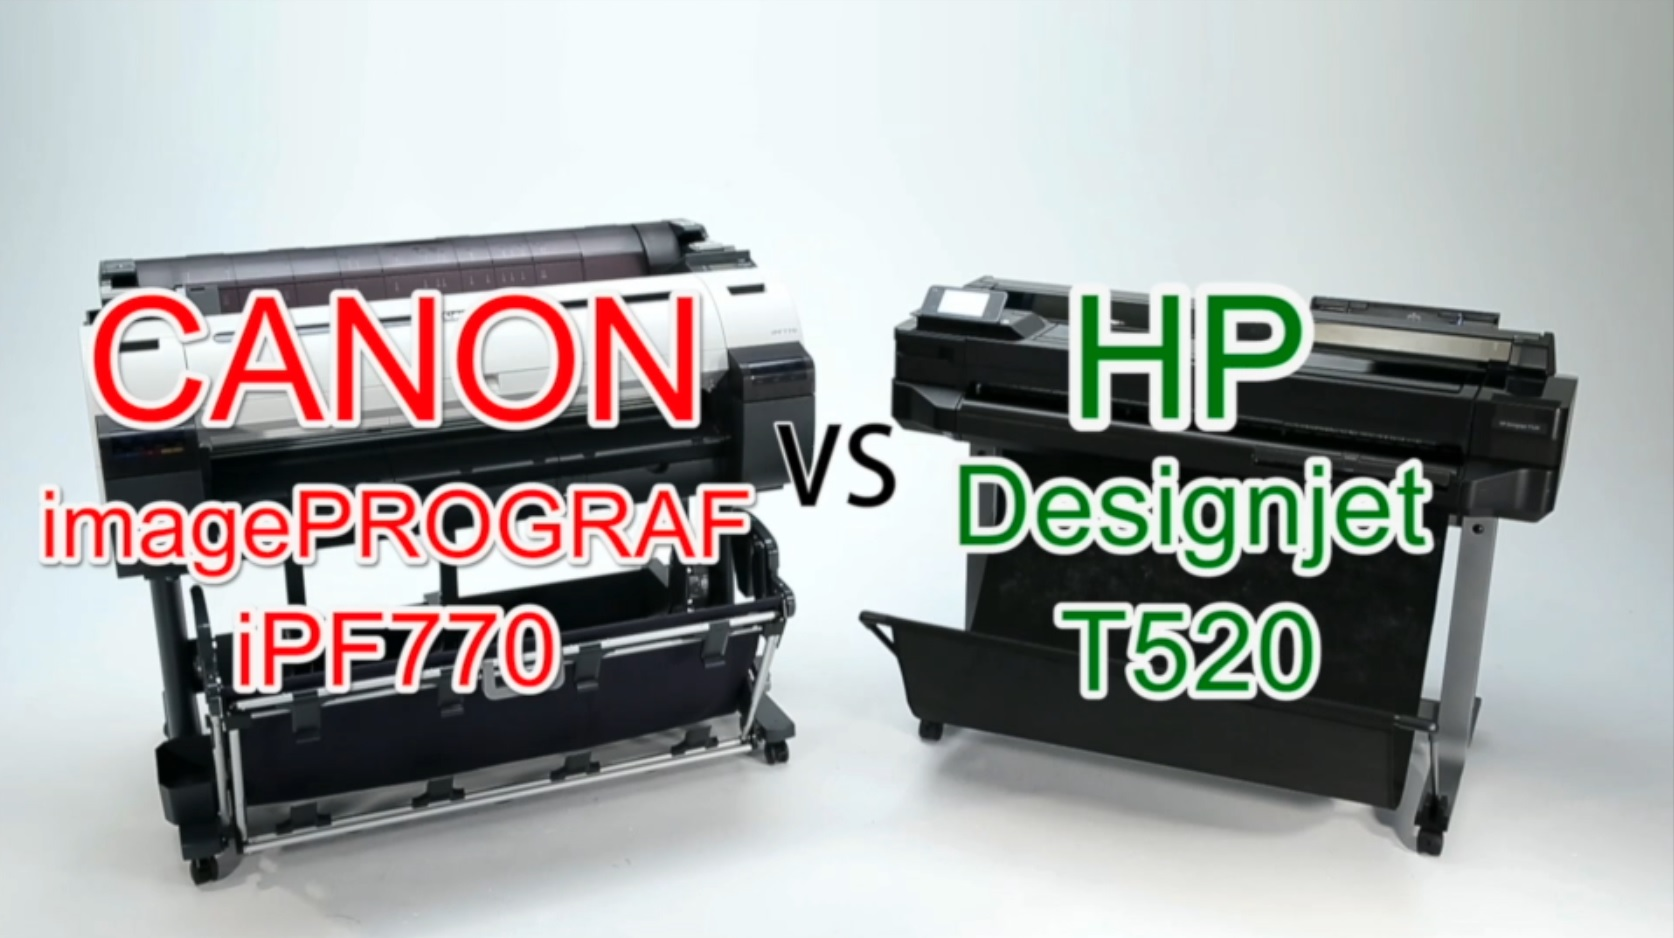 Canon iPF770 Vs HP T520 graphic